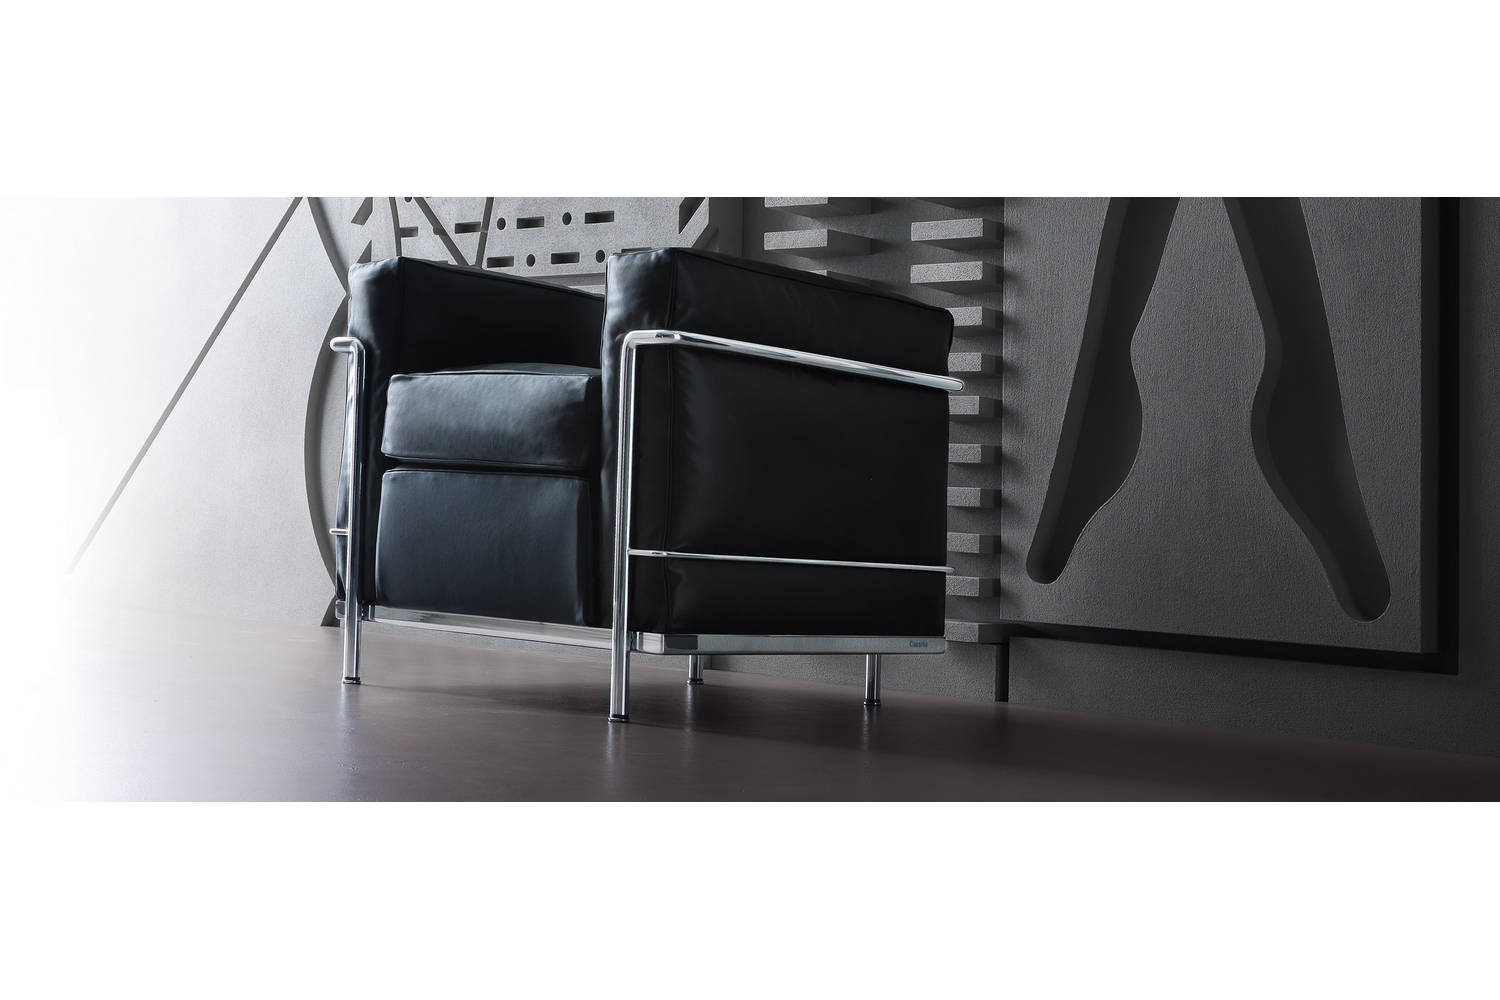 lc5 sofa review small double clic clac bed lc2 home co